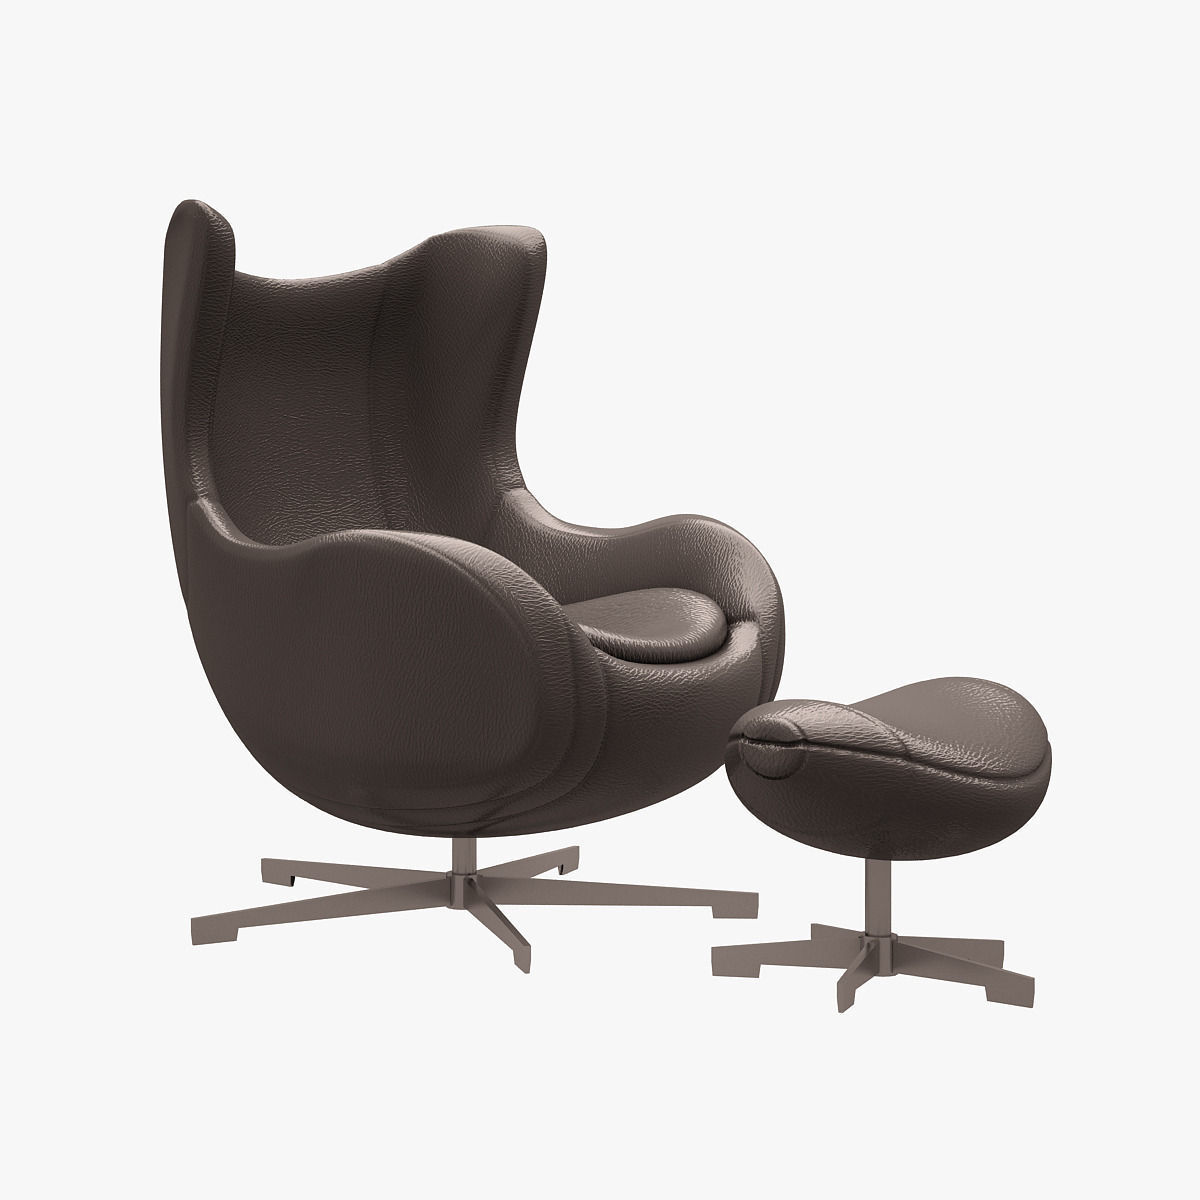 Arne Jacobsen Egg Chair.Egg Chair Arne Jacobsen 3d Model Low Poly Cgtrader